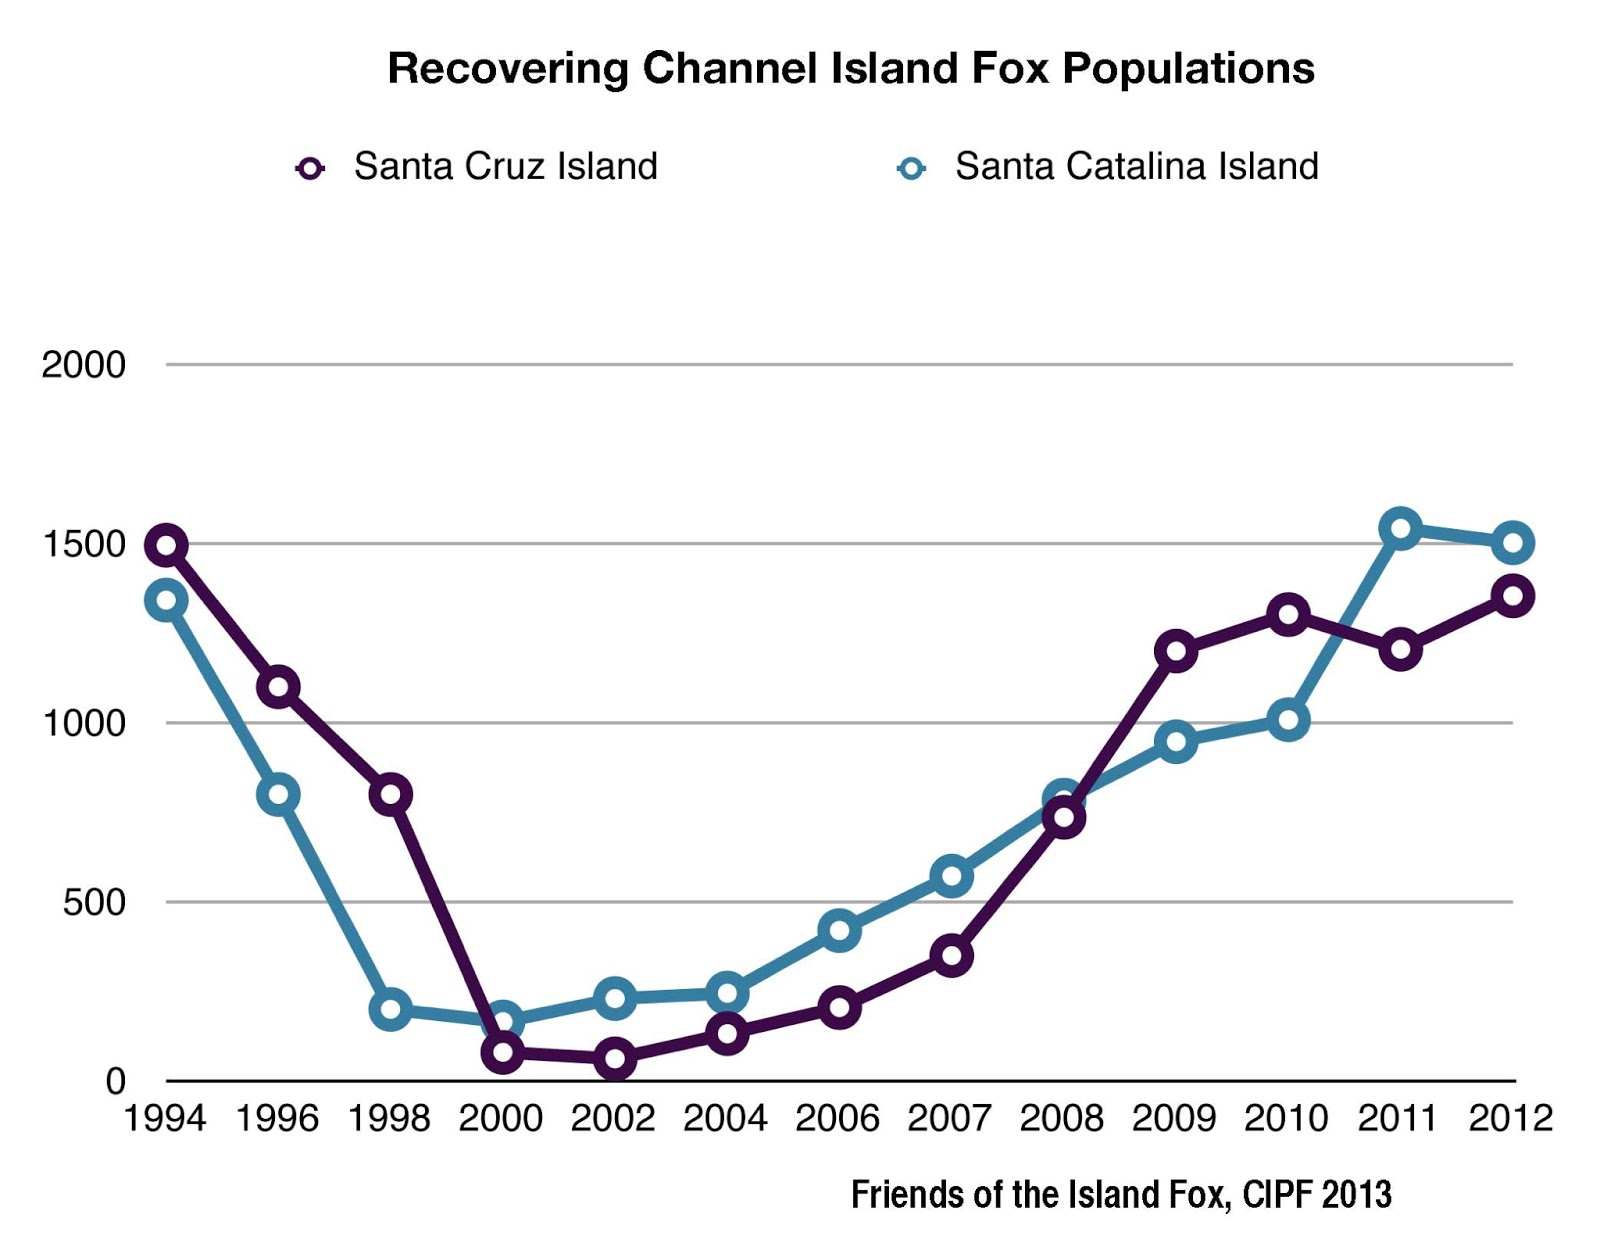 Friends Of The Island Fox 2013 Bald Eagle Diagram Golden Related Keywords Suggestions From 2000 To 2007 Foxes Increased In Captive Breeding Facilities On Each Islands And Were Gradually Released Into Wild